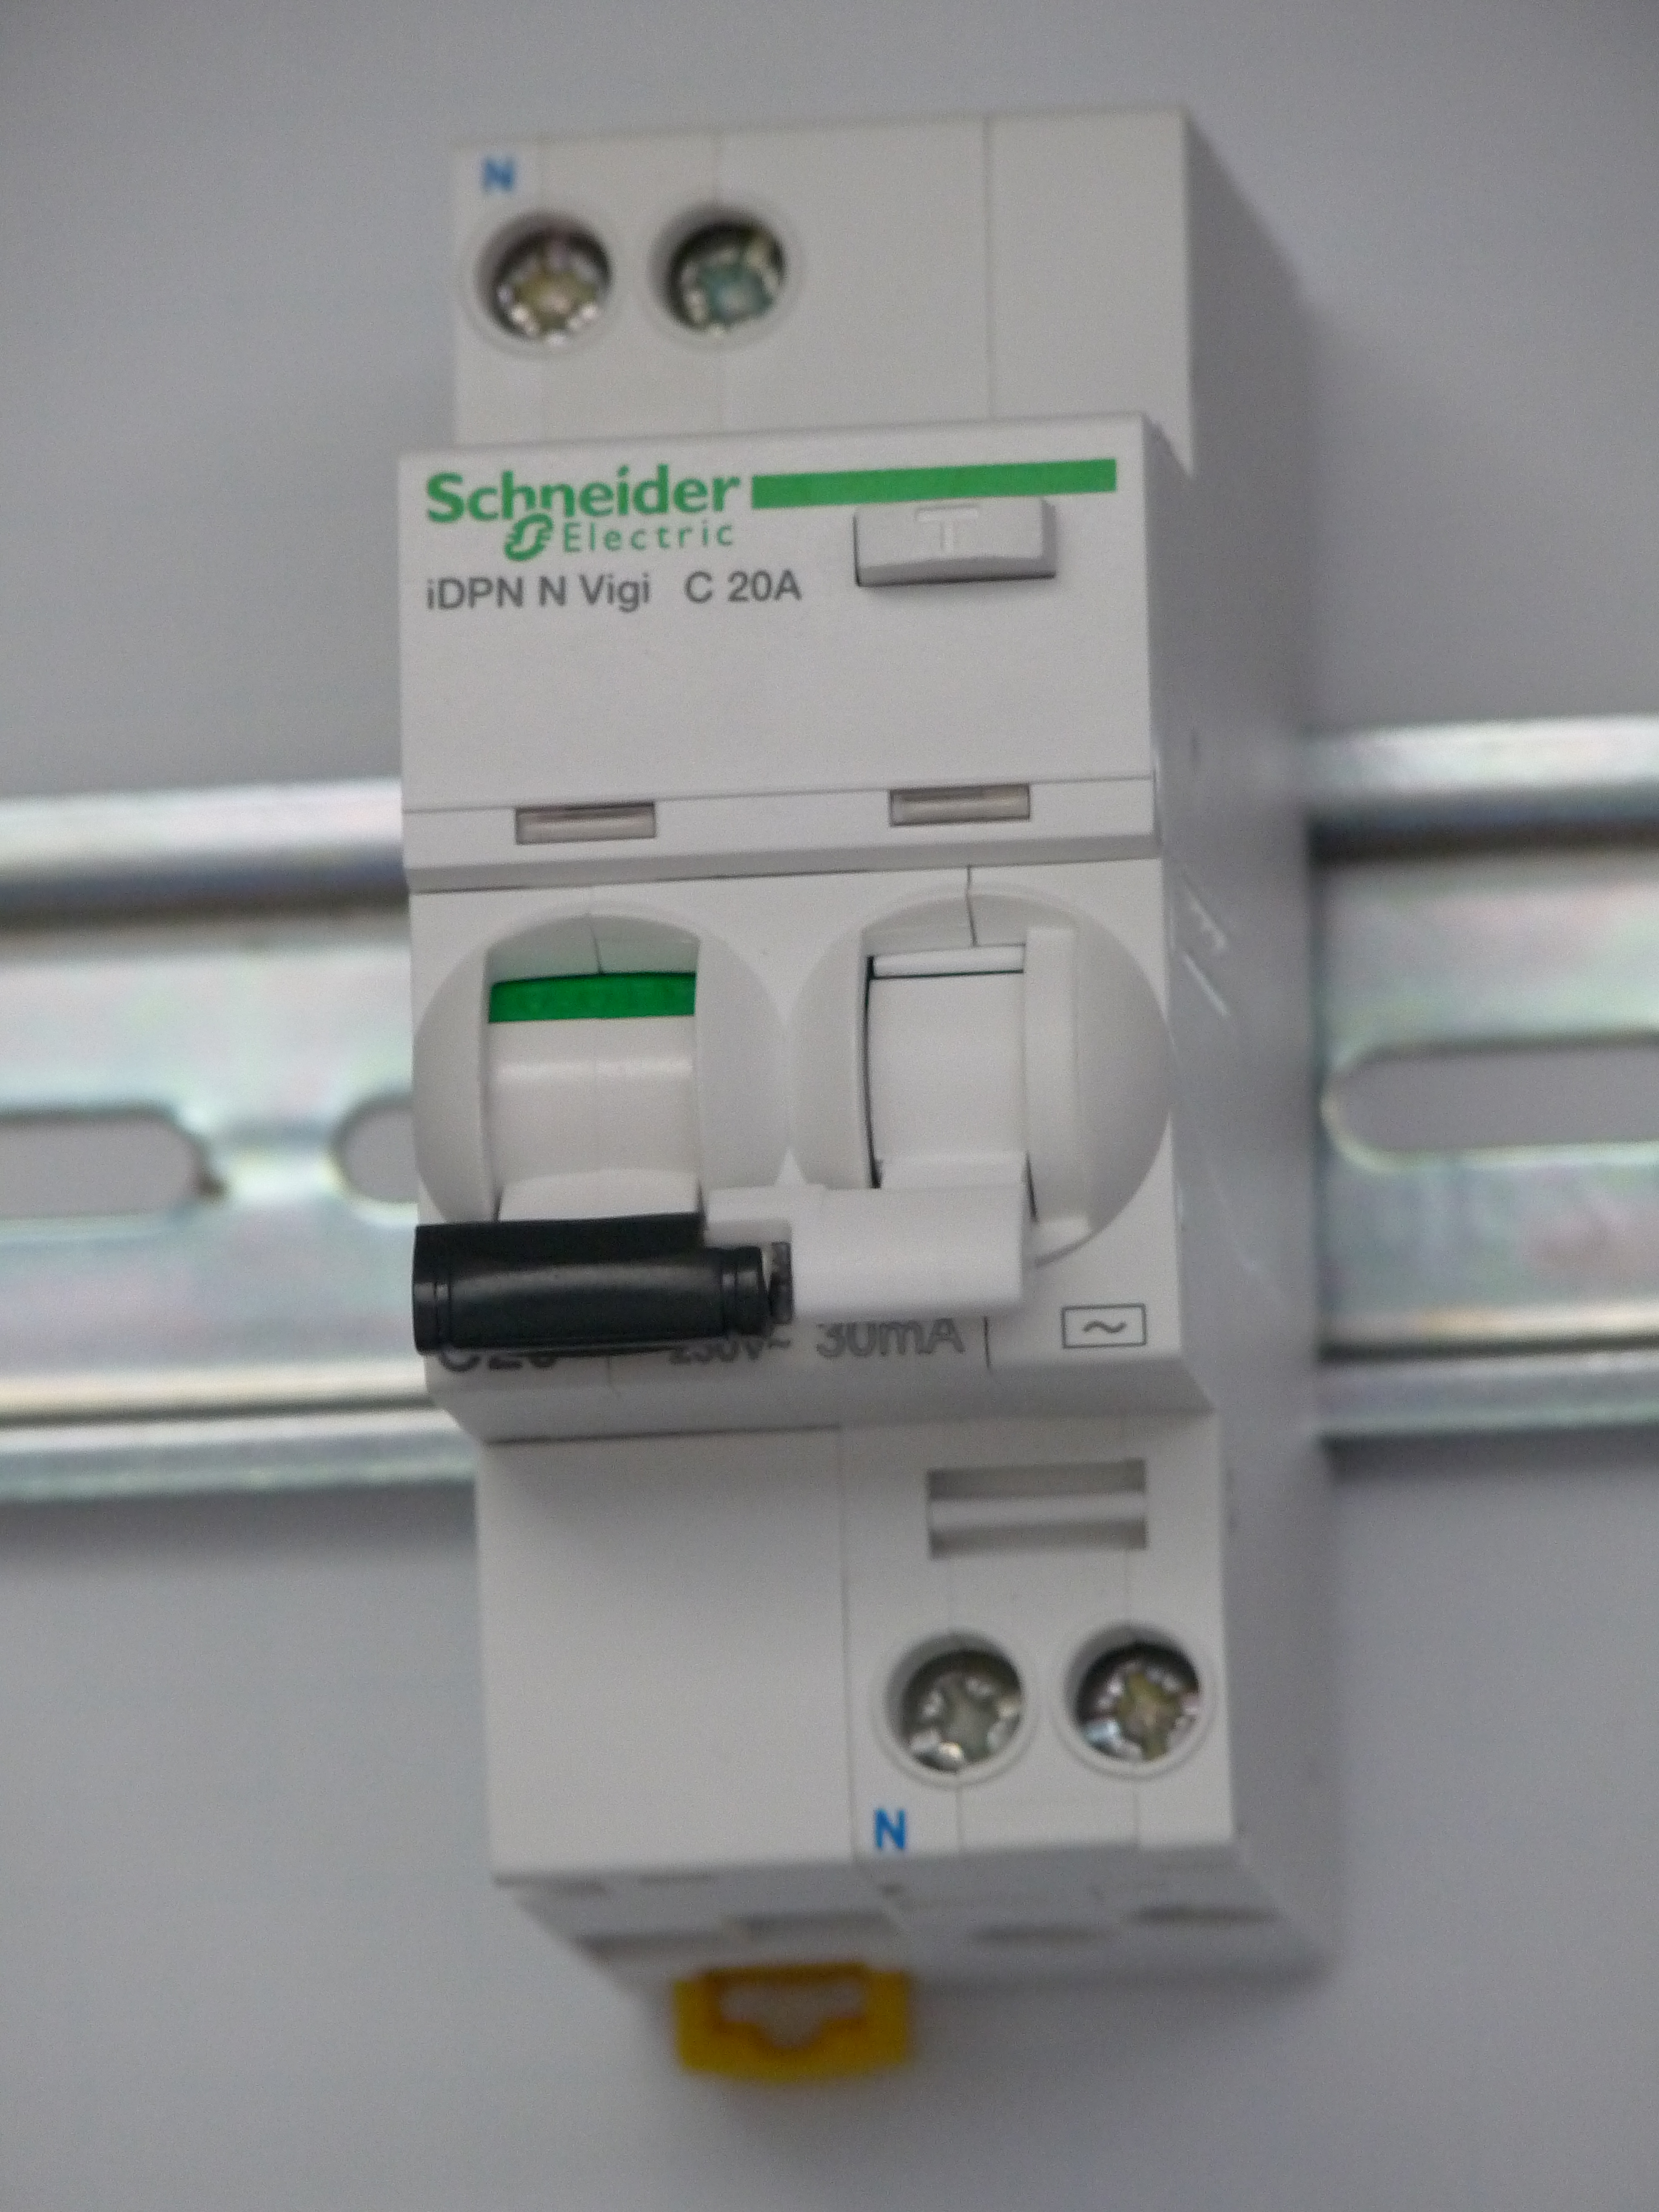 Fileschneider Electric A9d31620 Wikimedia Commons Electrical Software Eep